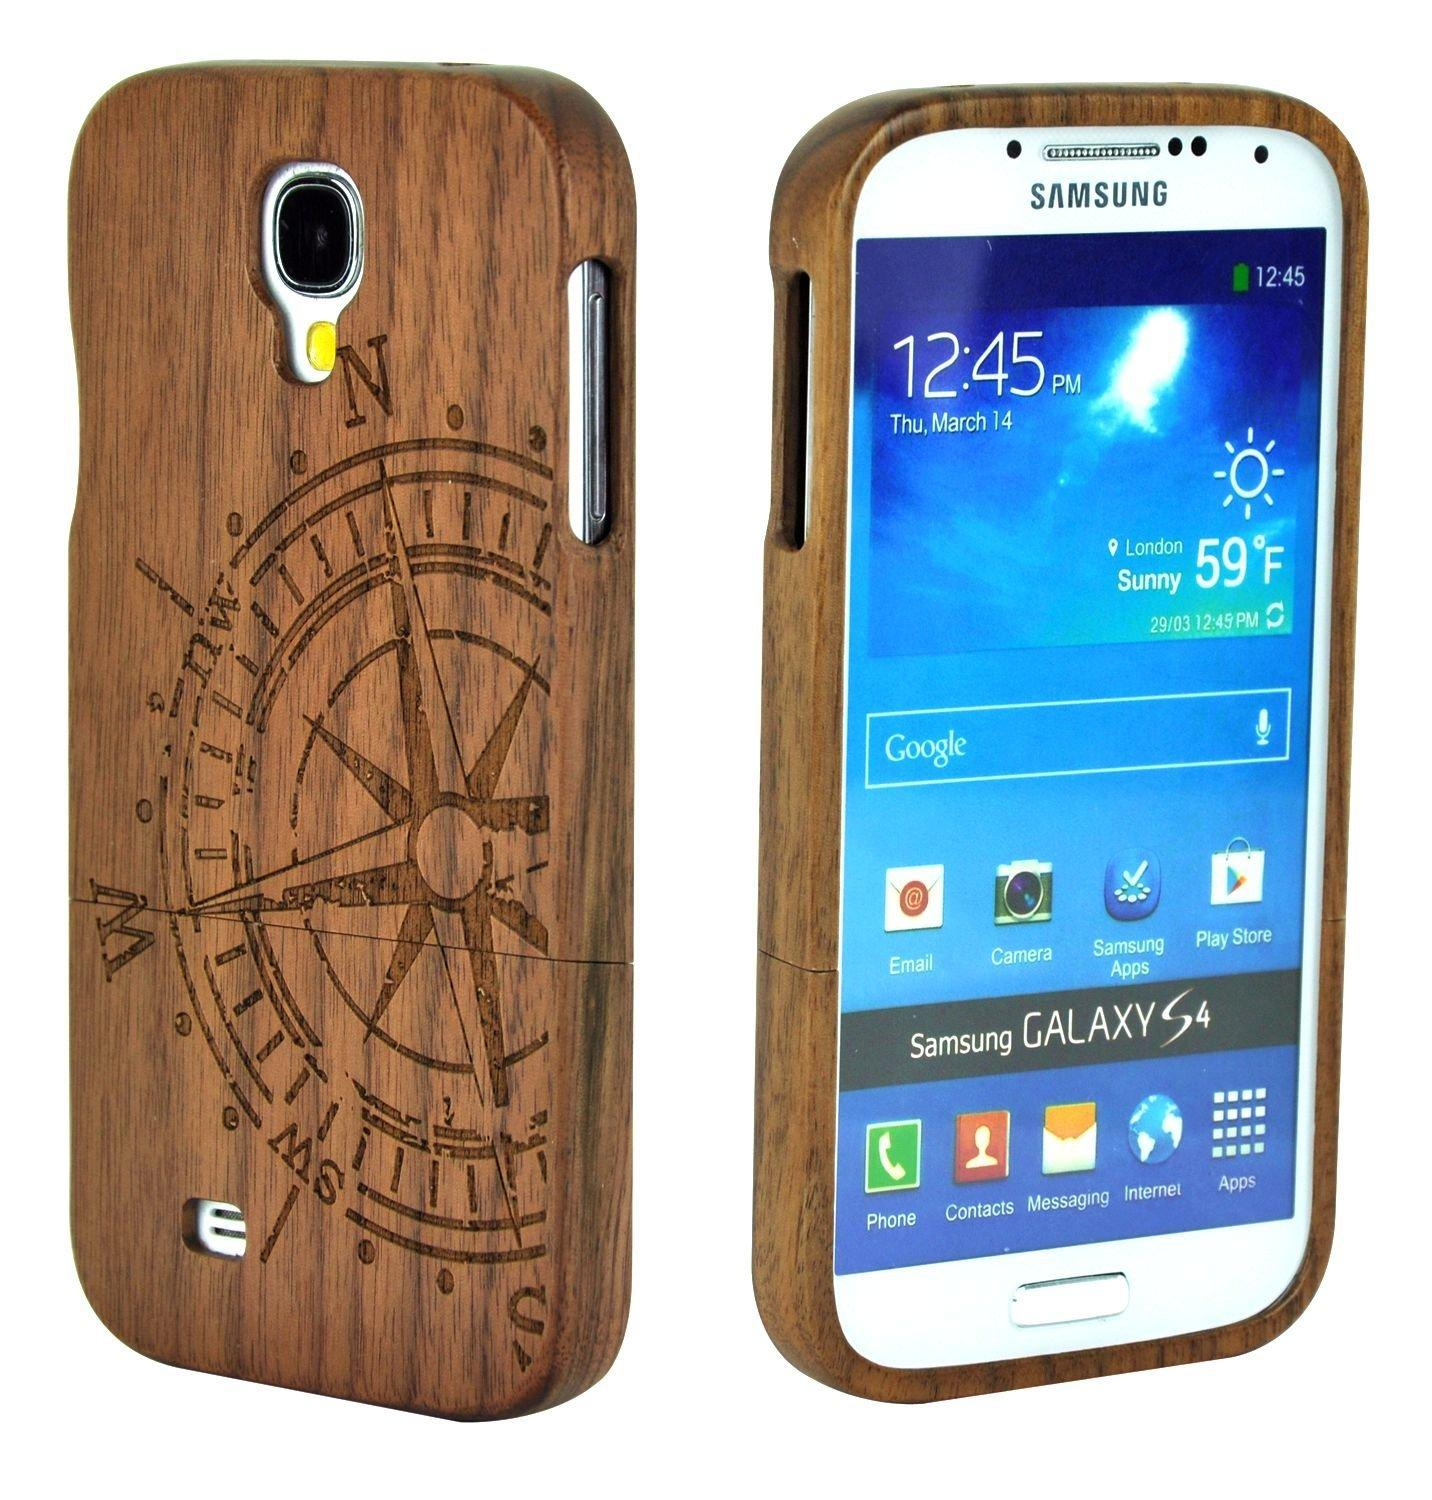 Unique Handmade Natural Wood Wooden Walnut Compass Hard bamboo Case Cover For Samsung Galaxy S4 SIV i9500/S5 Neo/S6/A3 A5 2015(China (Mainland))